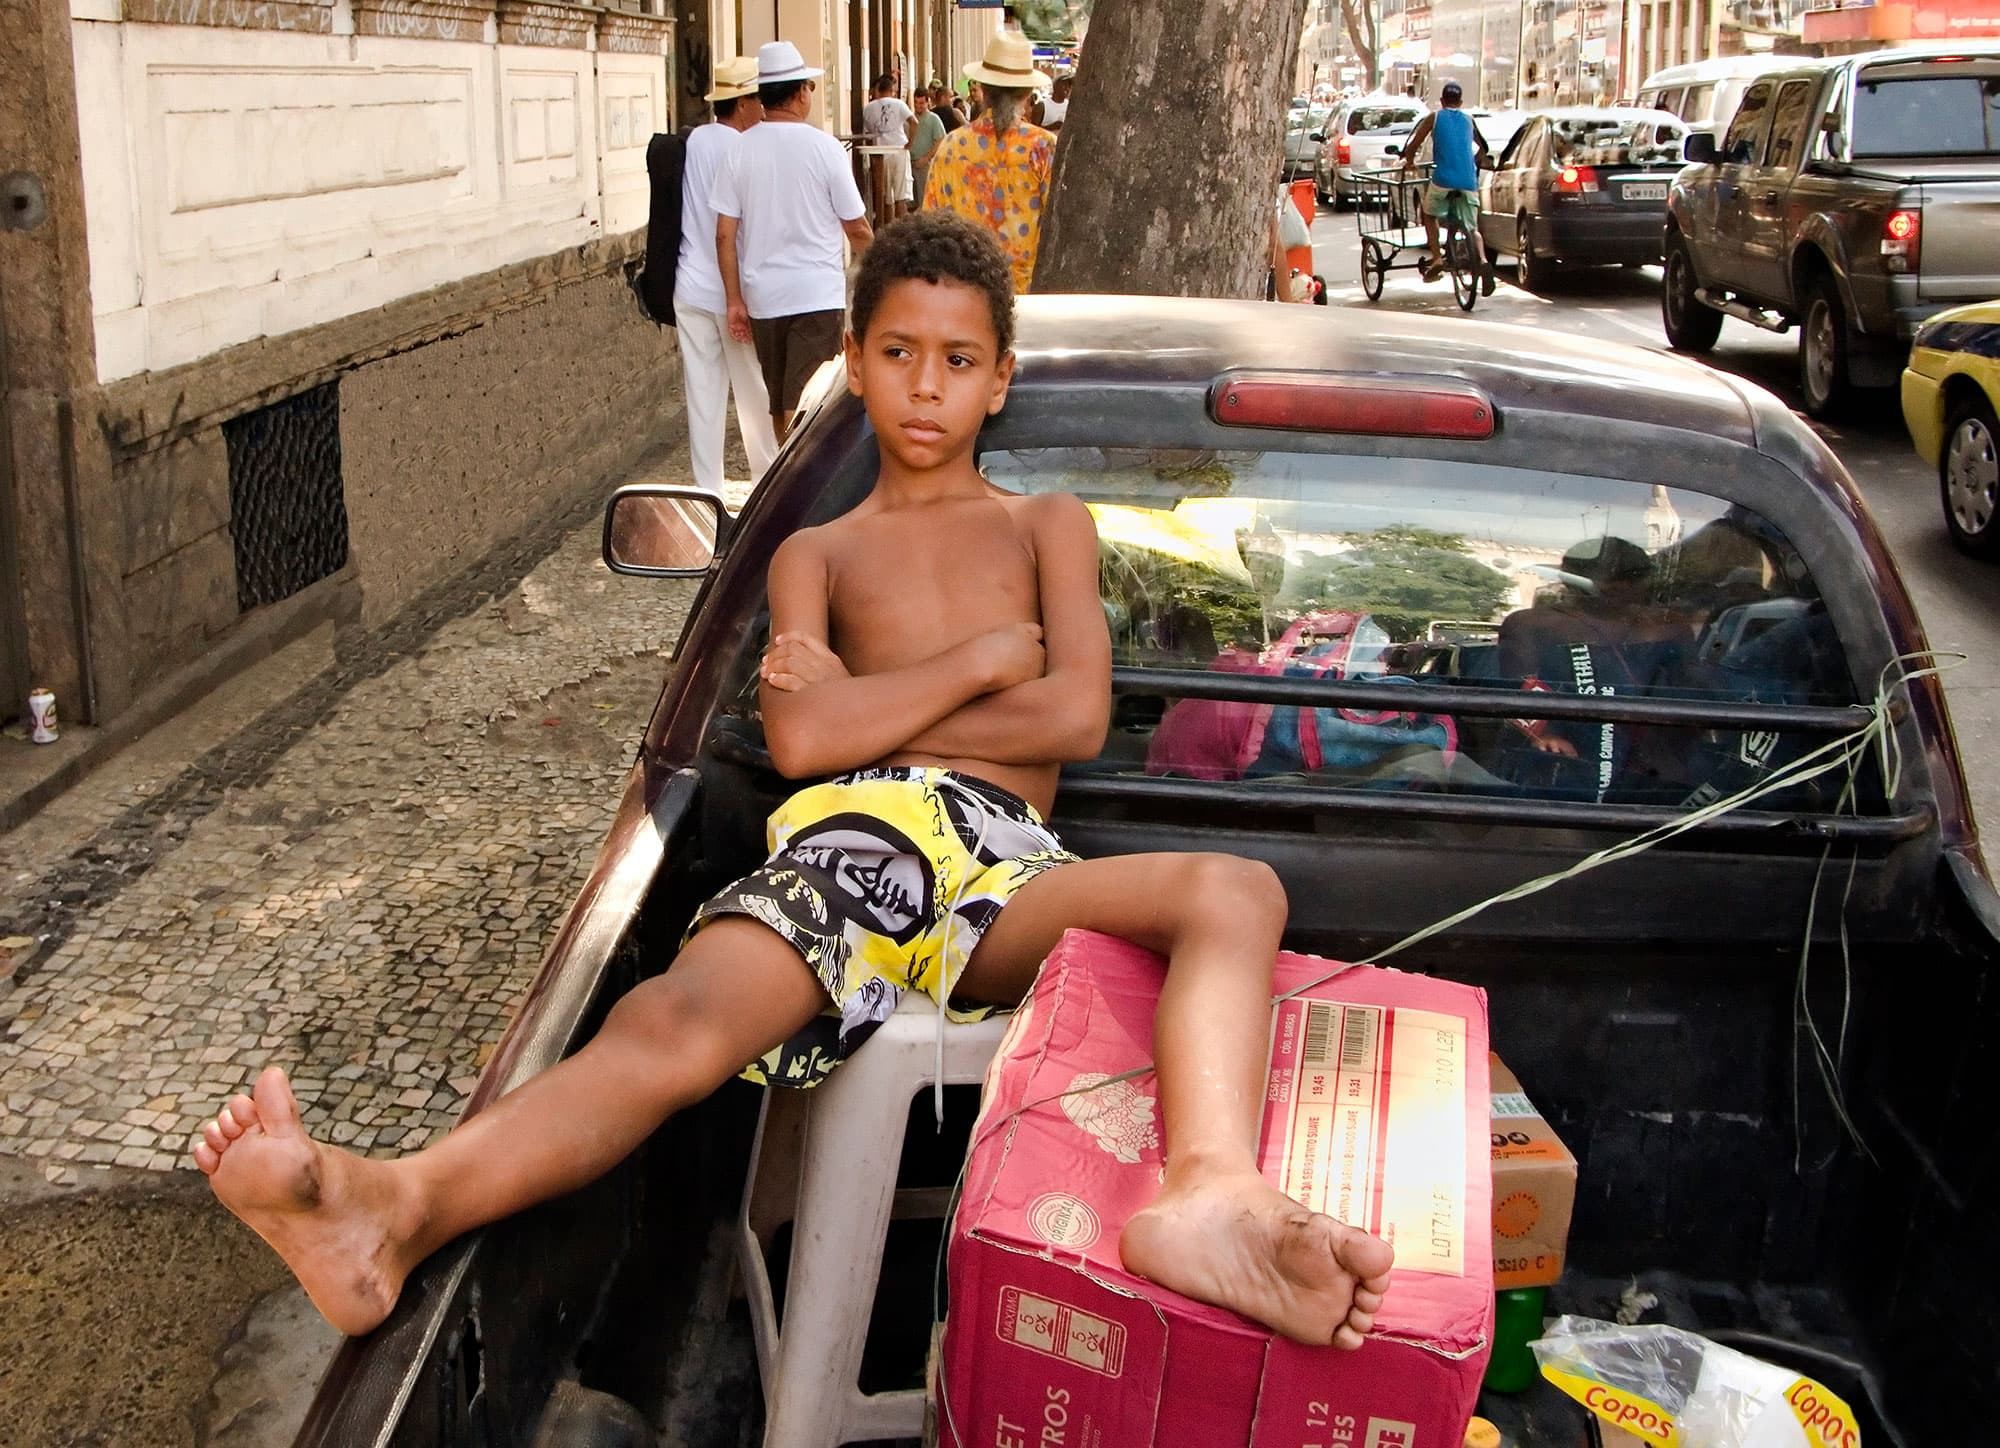 Boy-in-Pickup-Rio-2010-arthur-lazar